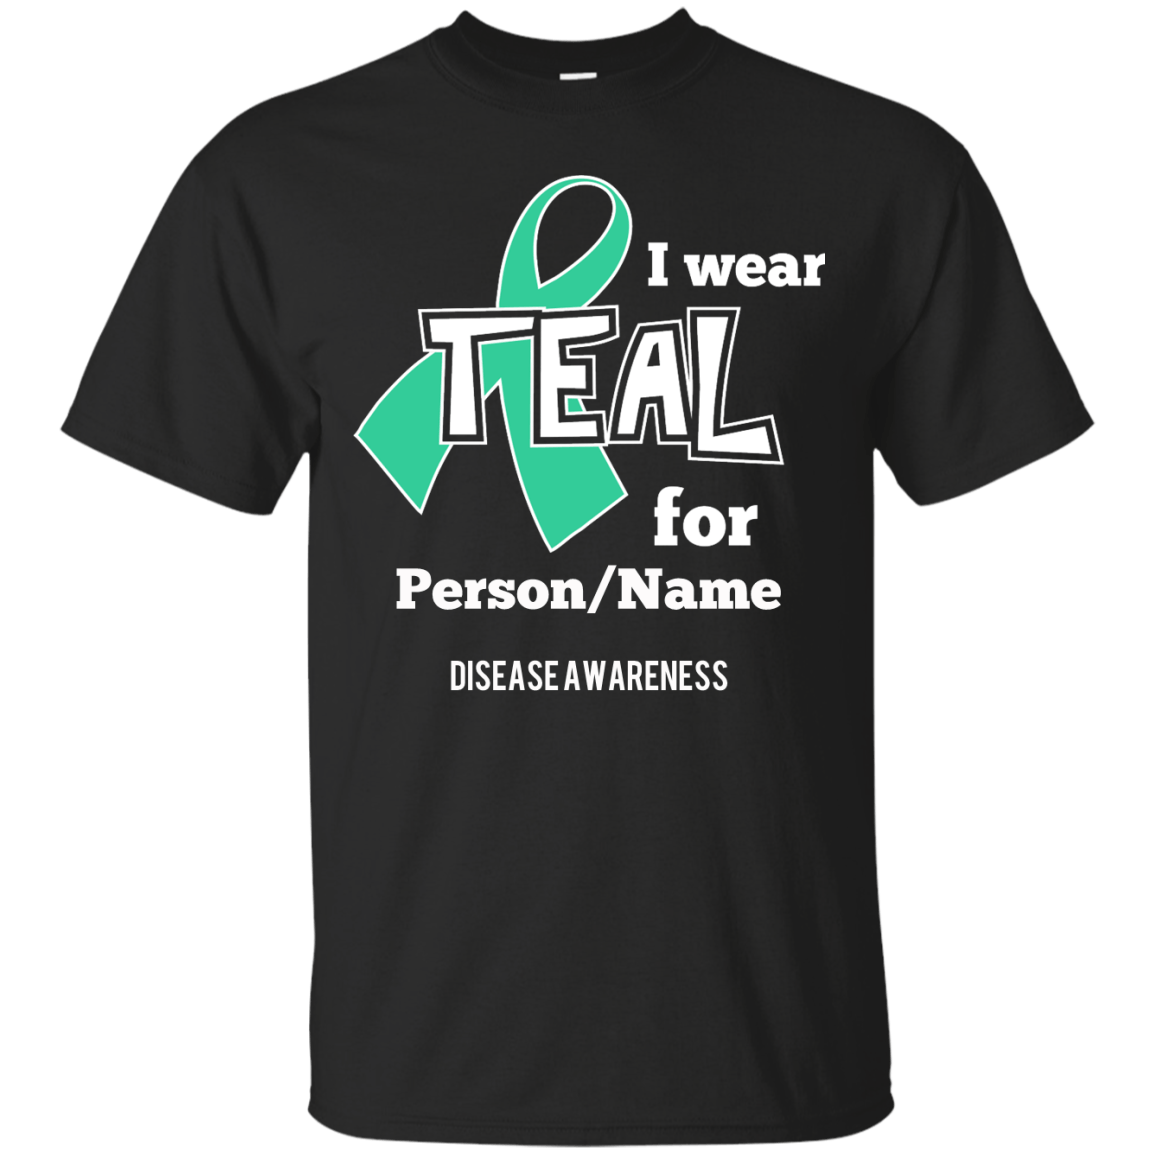 Customisable I Wear Teal For Unisex Shirt - The Unchargeables